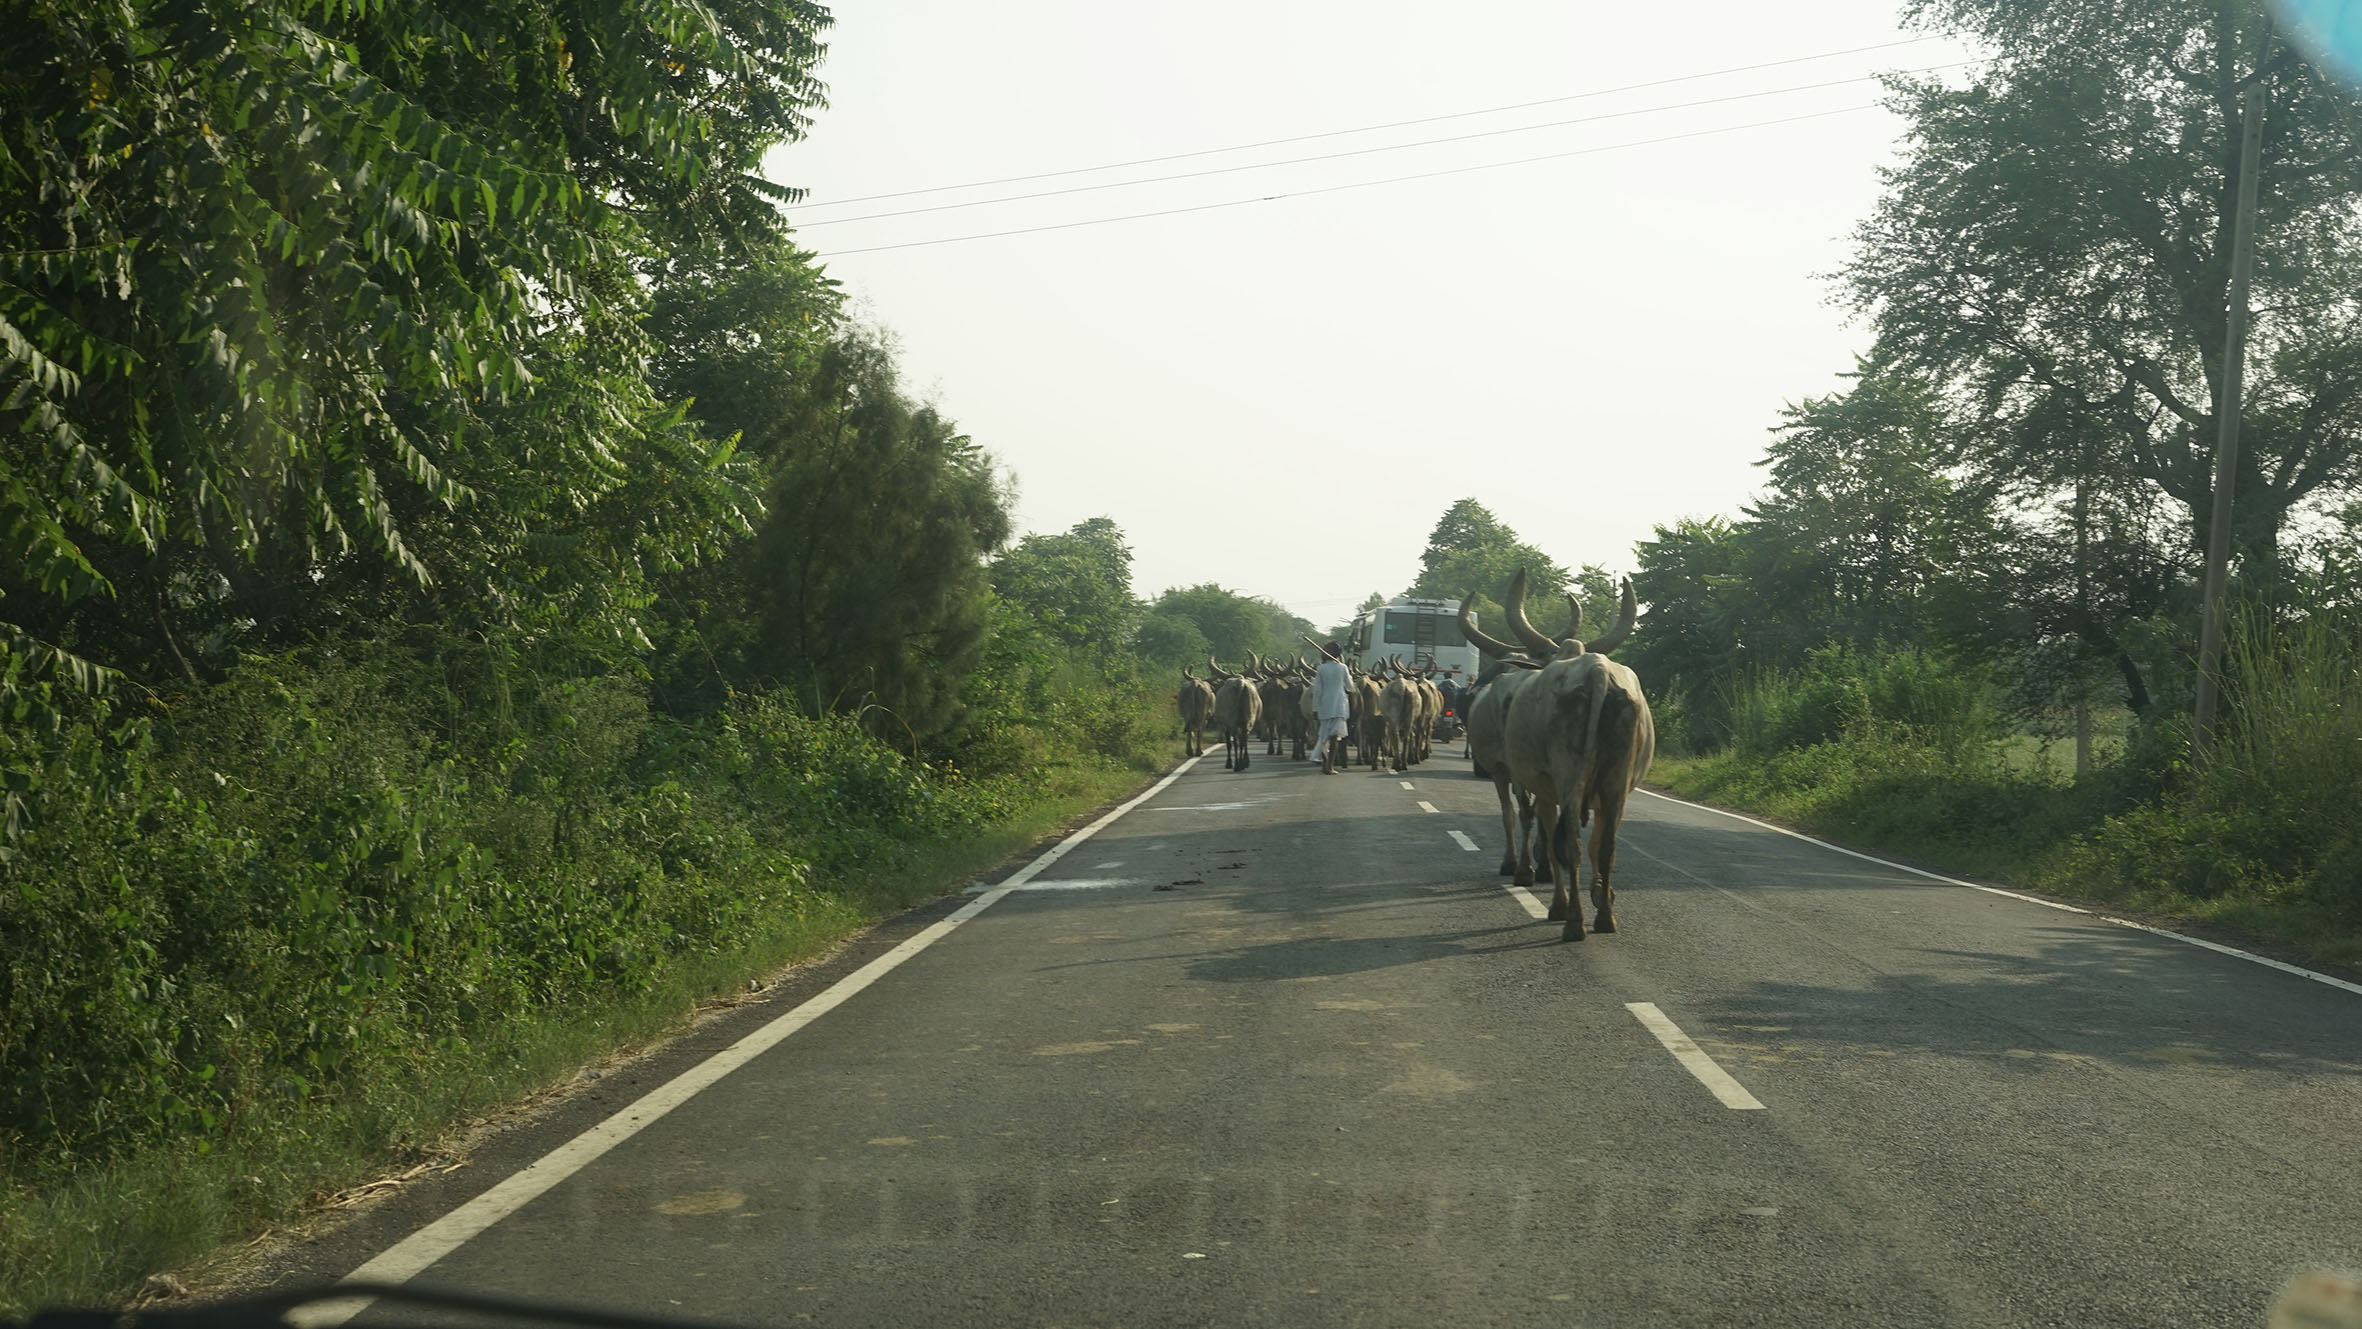 Conflicts of transhumance